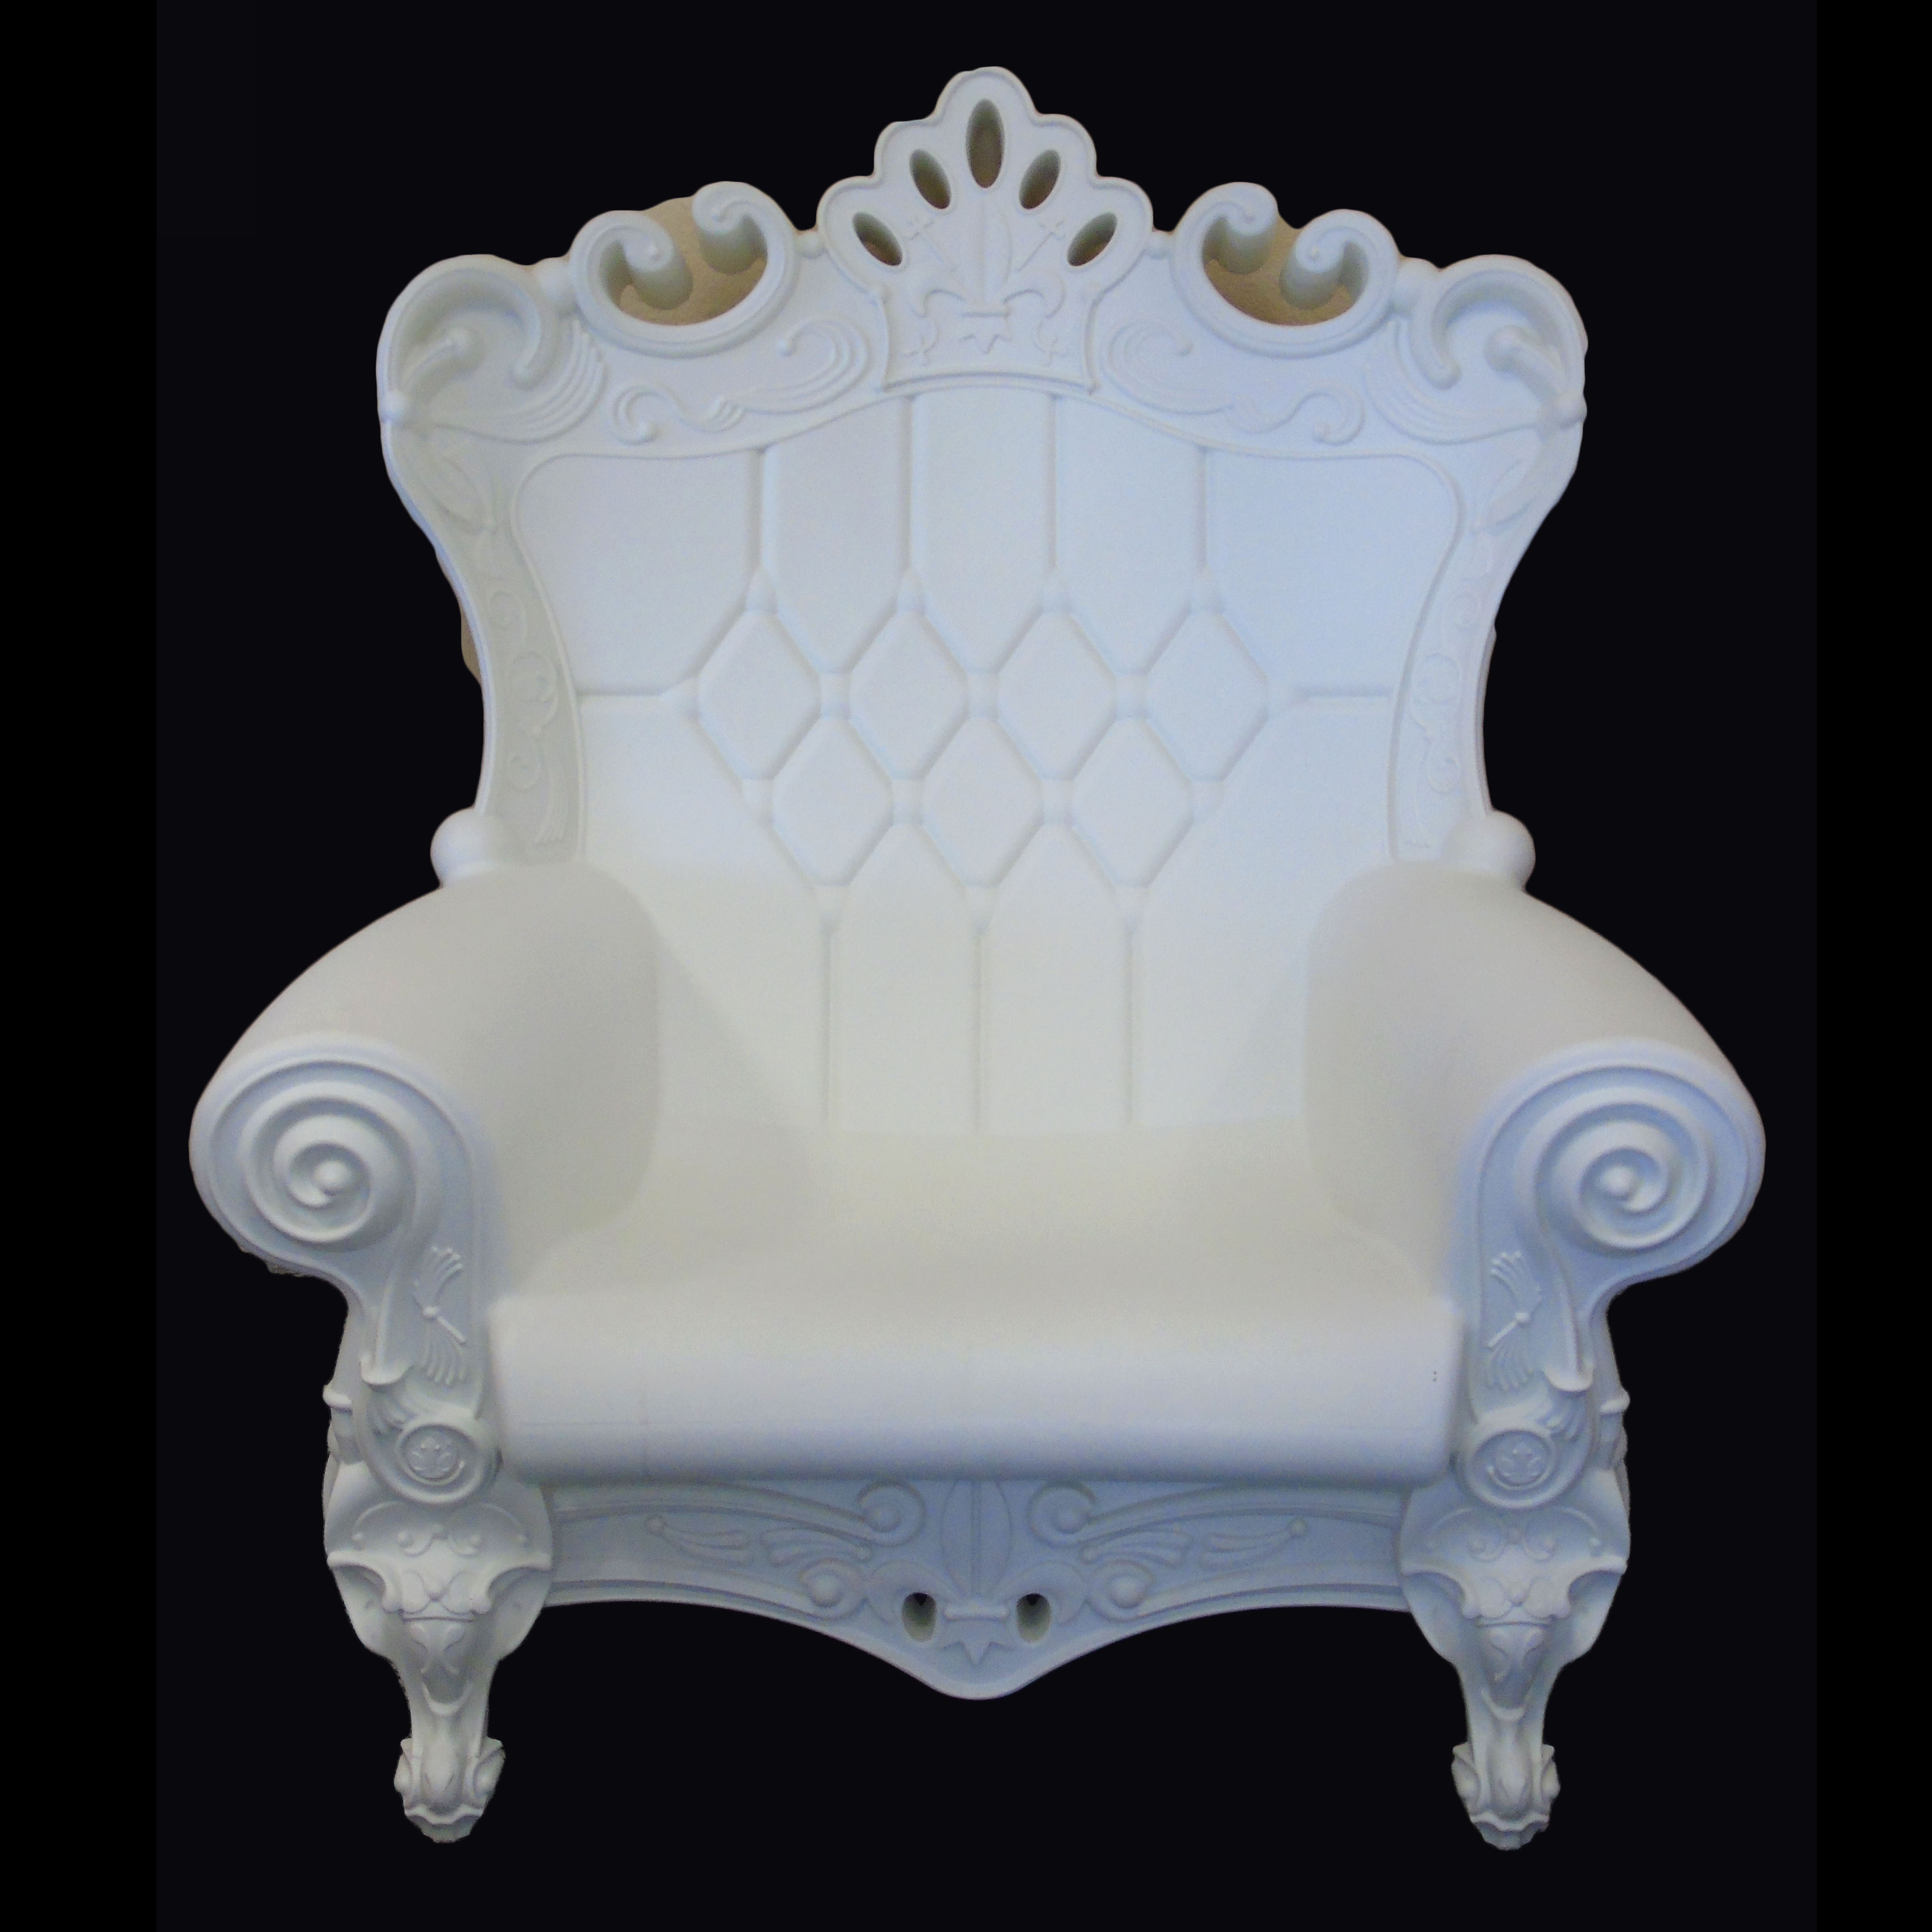 Party Chair Rentals The Queen Chair